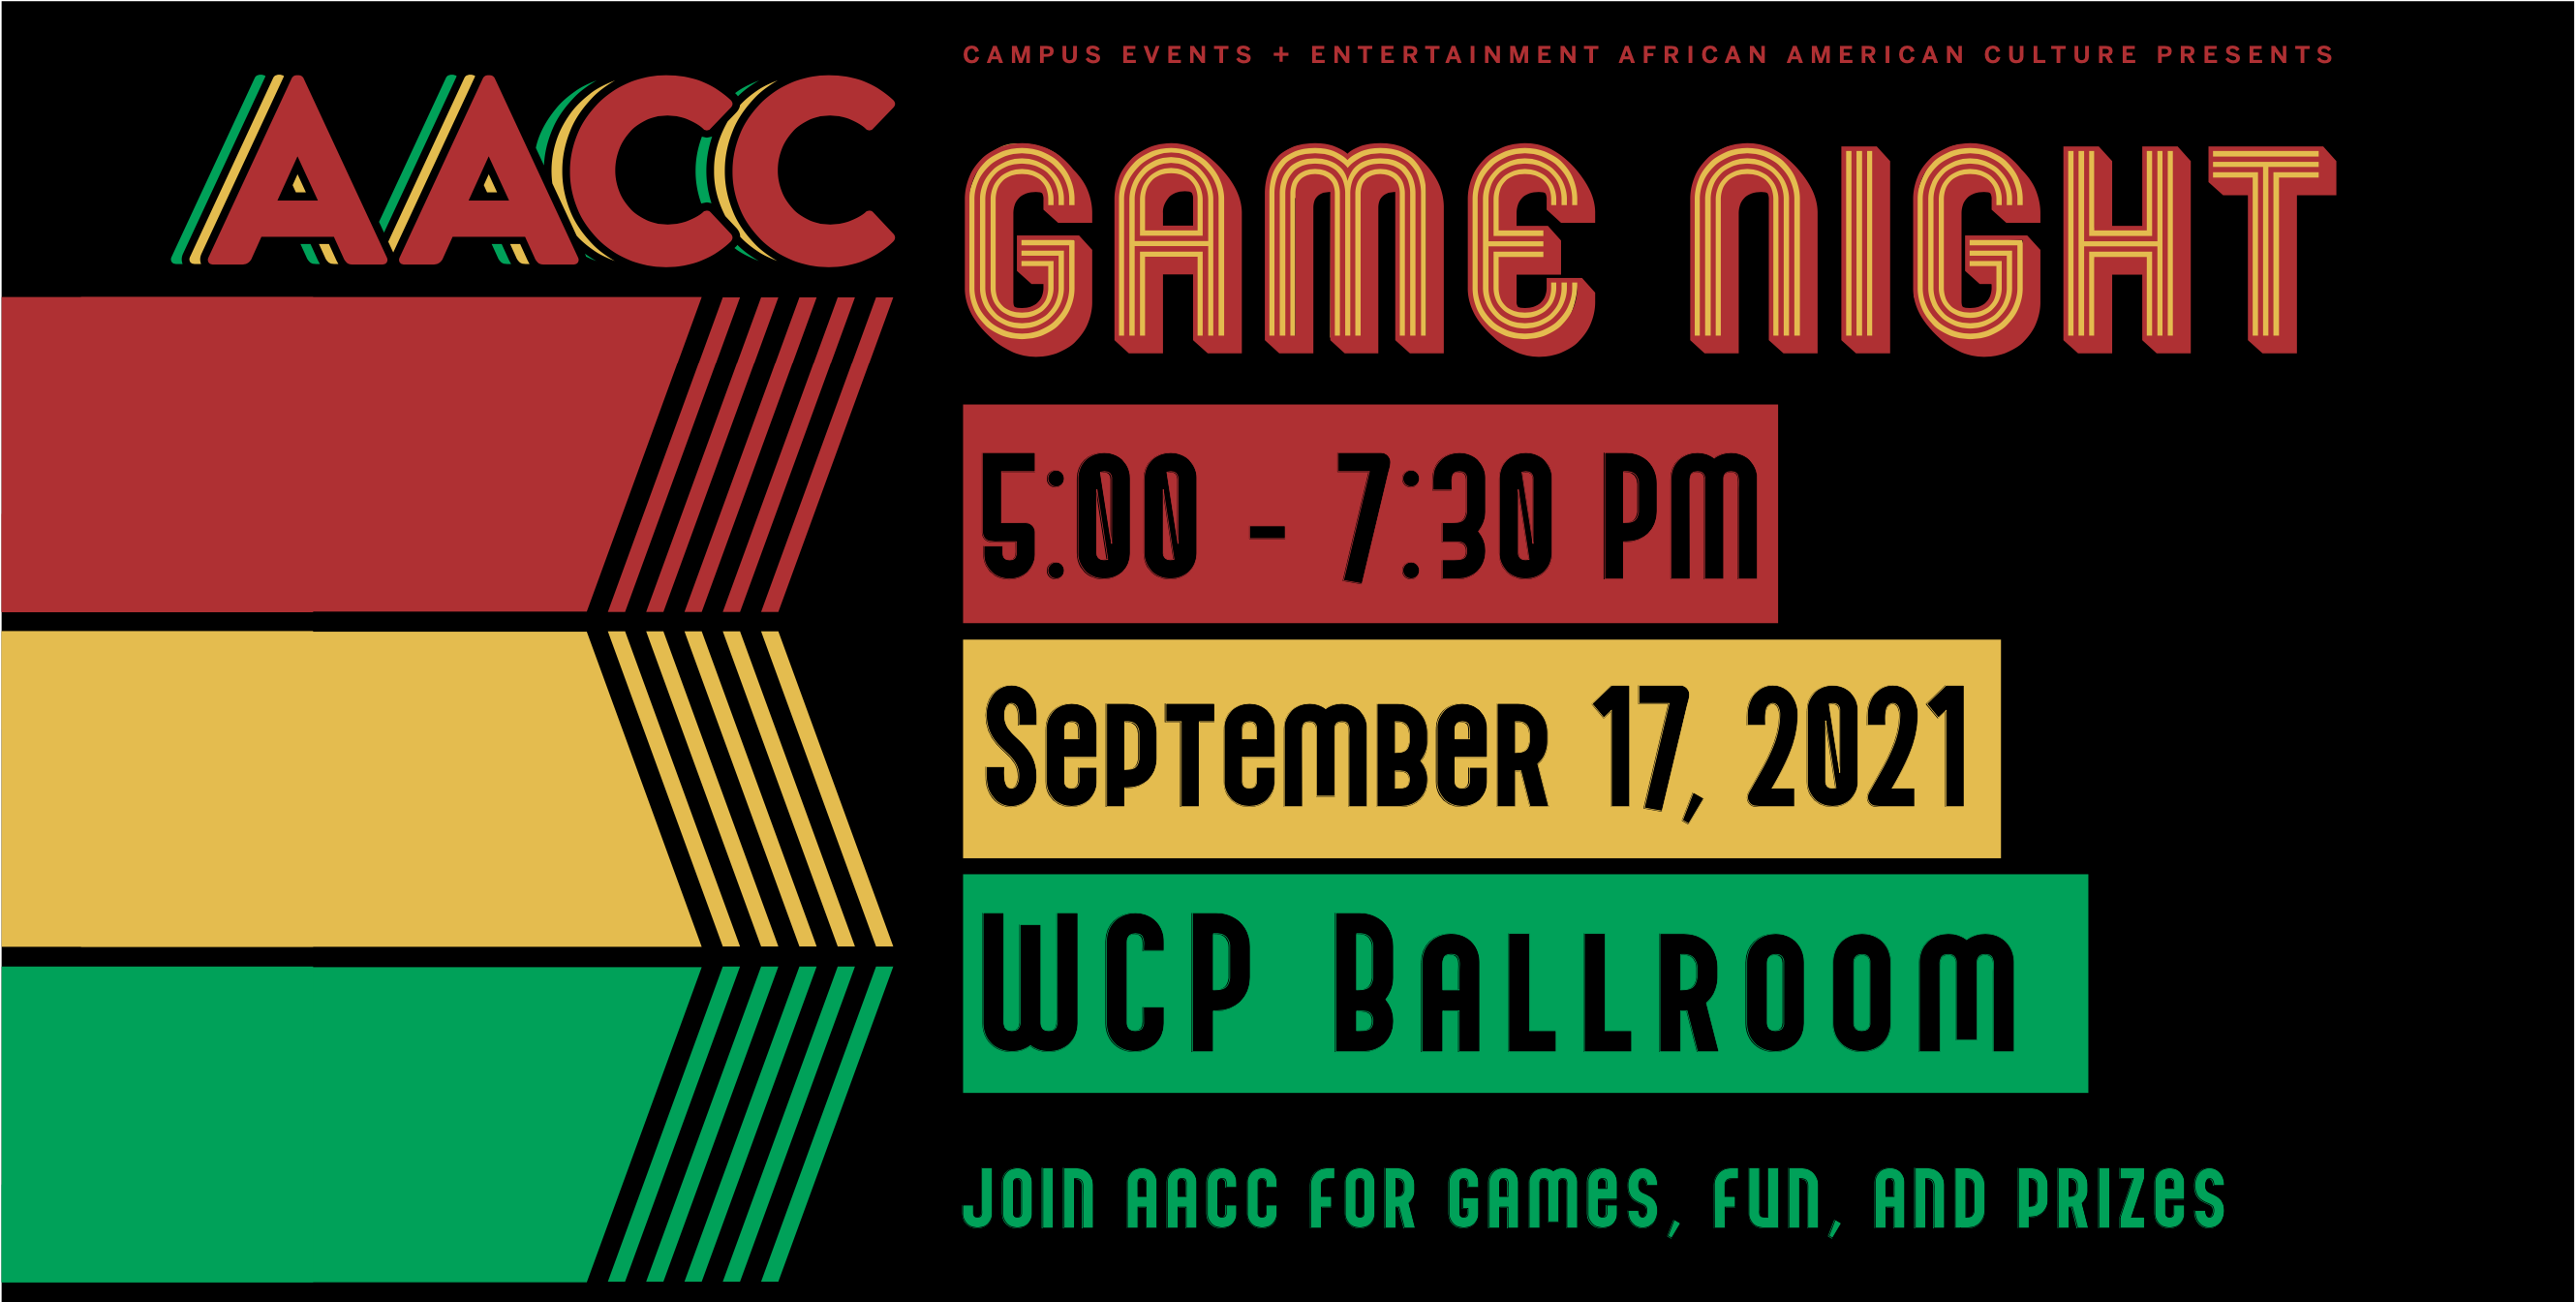 Graphic describing AACC's Game Night event, with event information listed in black, green, yellow, and red.